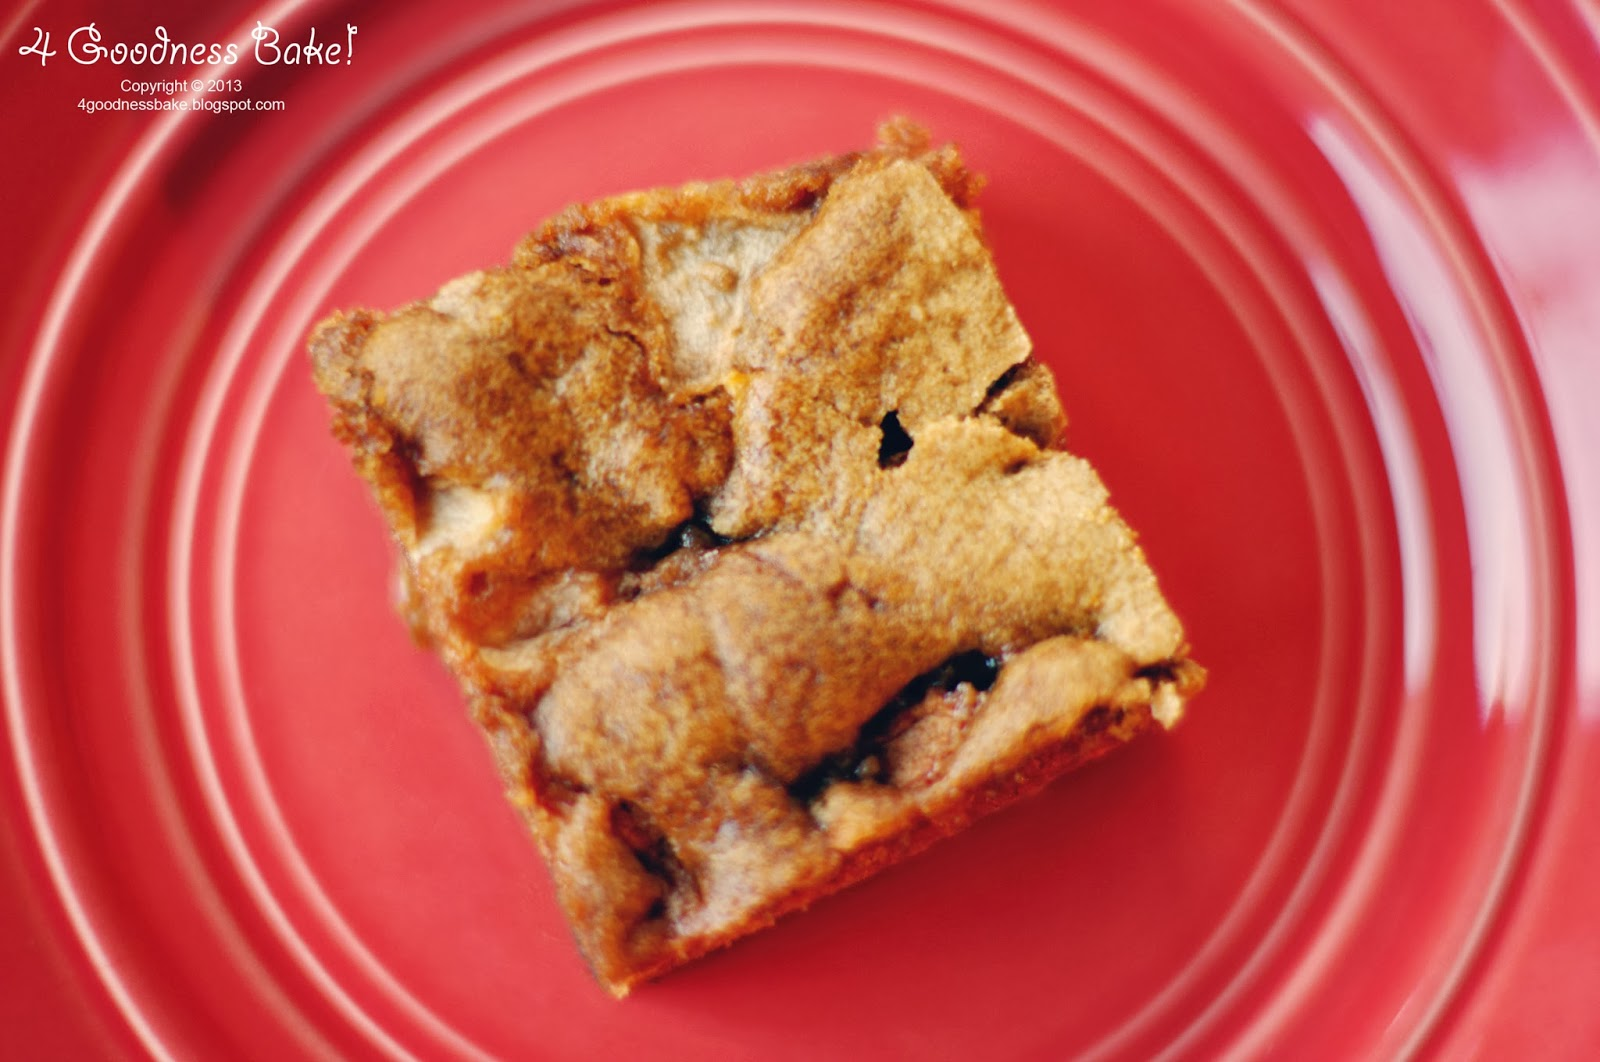 4 Goodness Bake Apple Cinnamon Cake